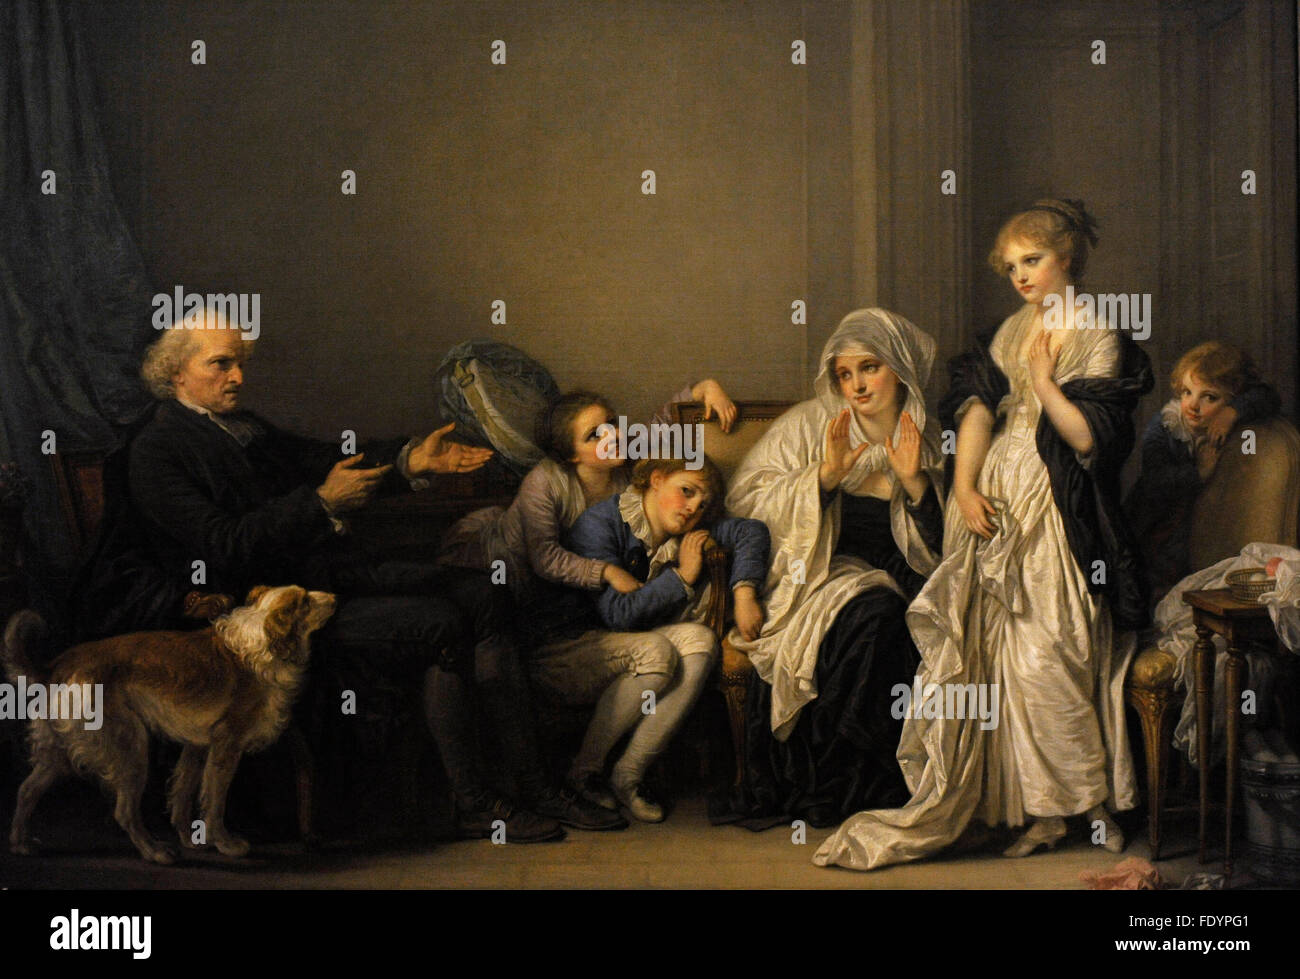 Jean-Baptiste Greuze (1725-1805). French painter. Widow and Her Priest. The State Hermitage Museum. Saint Petersburg. - Stock Image